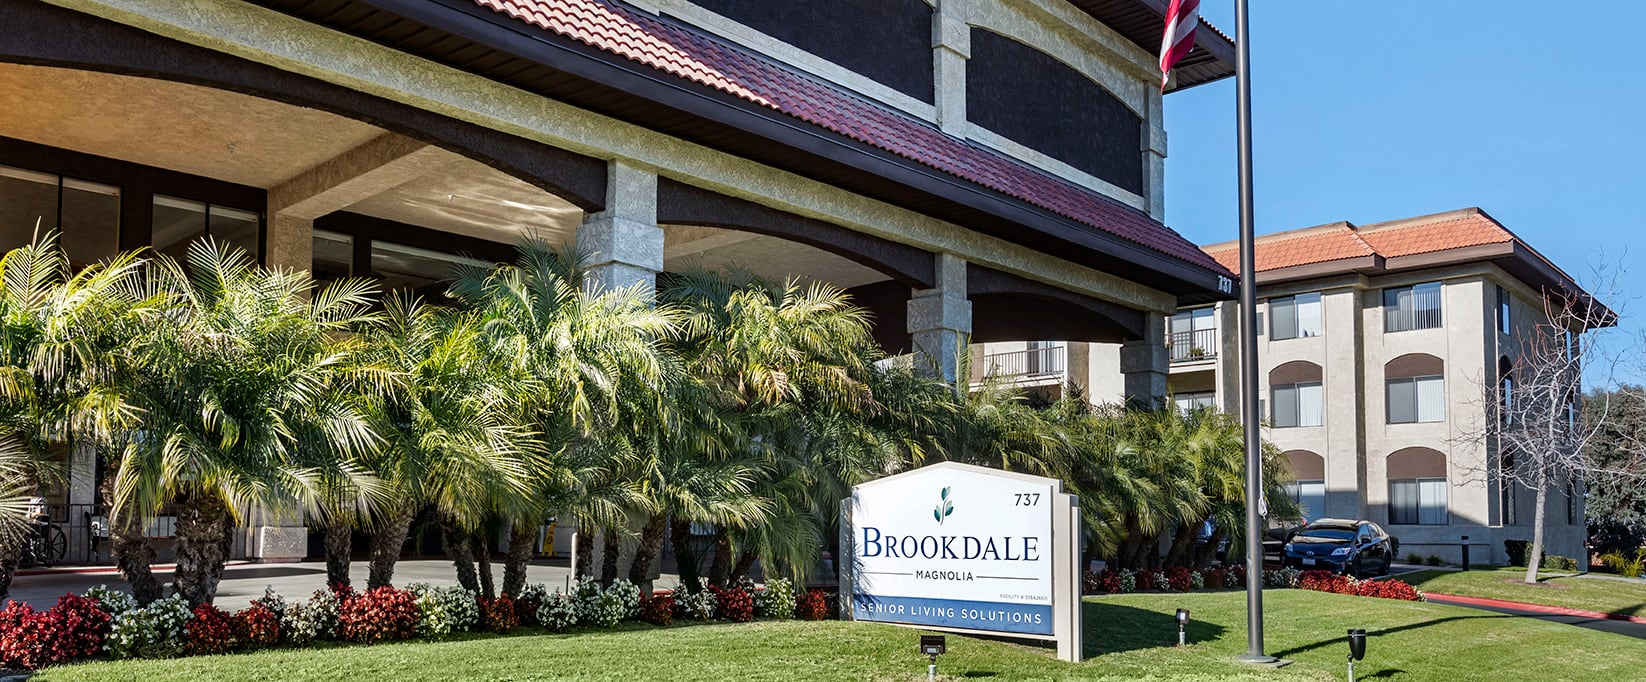 Brookdale Magnolia | Senior Living Corona, CA | Assisted Living